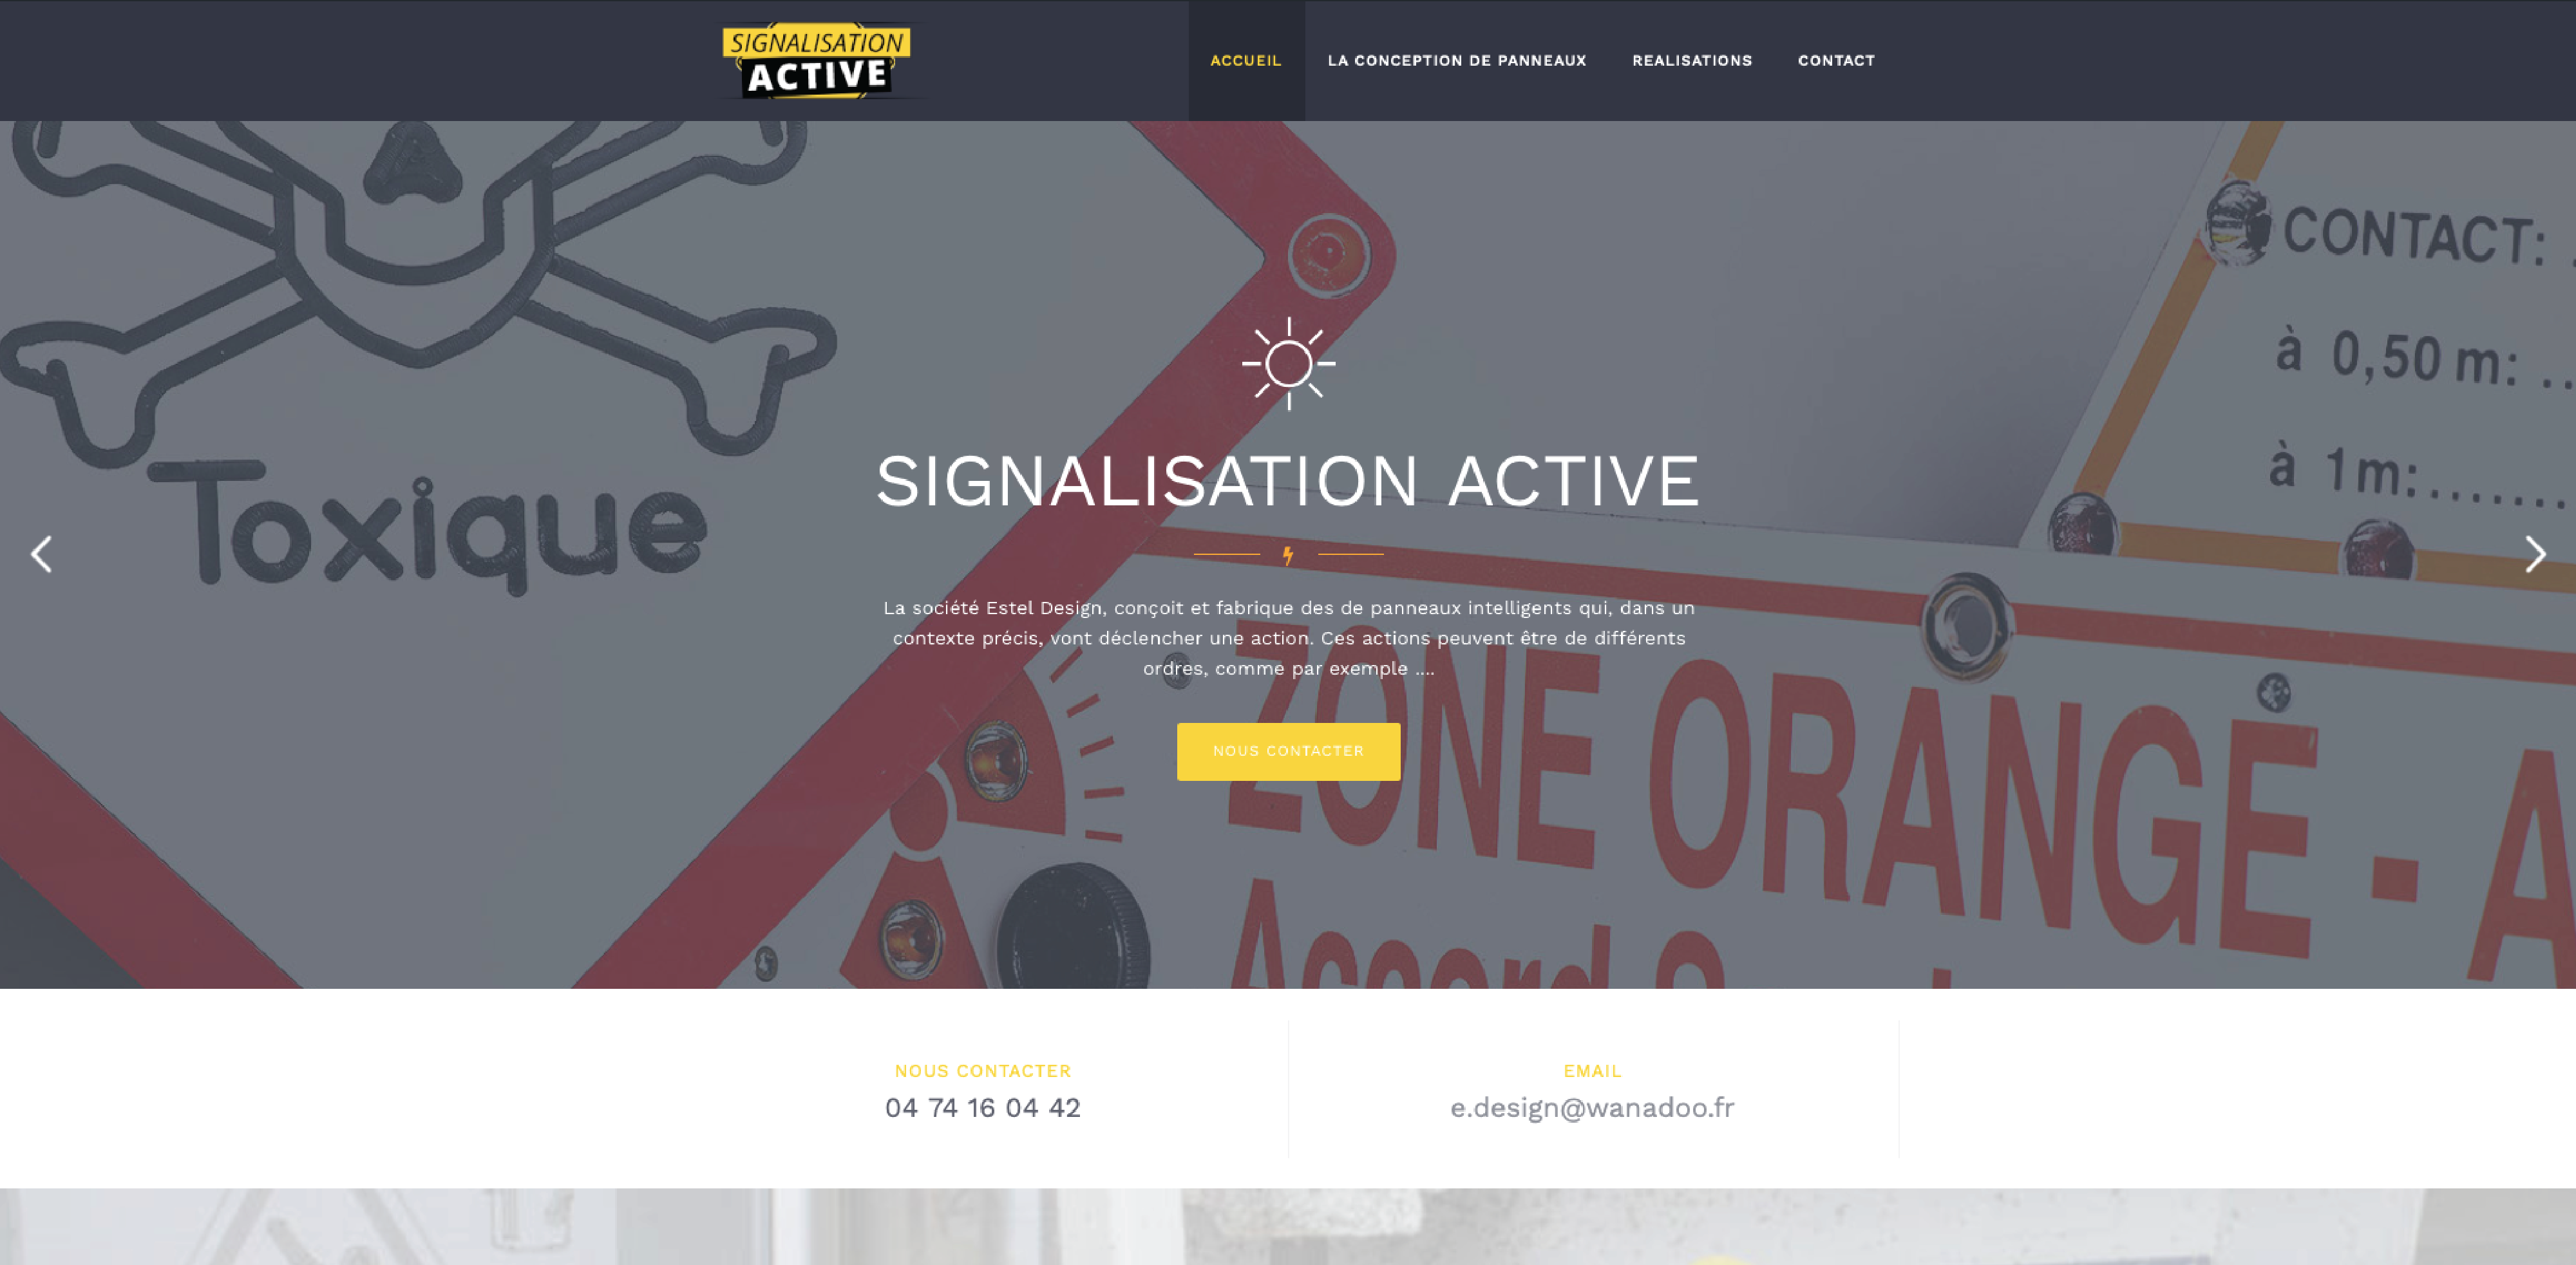 signalisation active_leasy concept, louer mon site, location de site, vente de site internet, site web, lyon, rhone alpes, creation de site internet